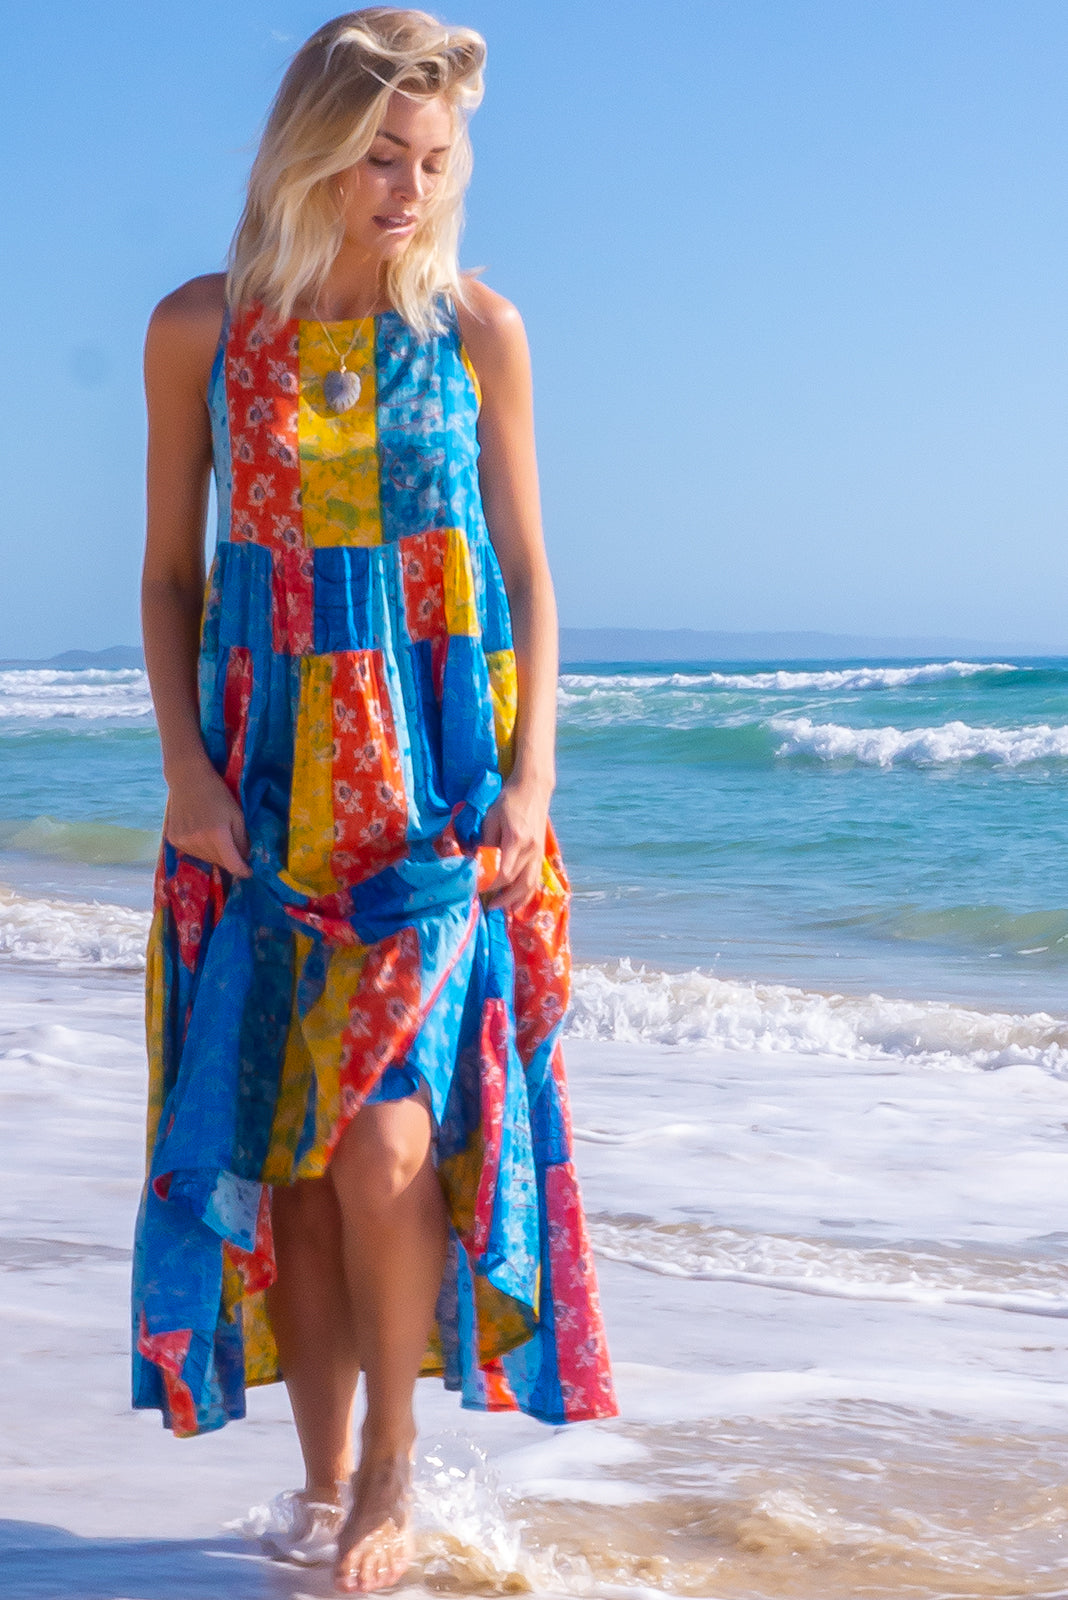 The Lulu Darling Cinque Stripes Maxi Dress features 66% Cotton, 34% Rayon, high neck with thin straps, full, tiered skirt falling from under bust, deep side pockets and blue, yellow, red and orange print.